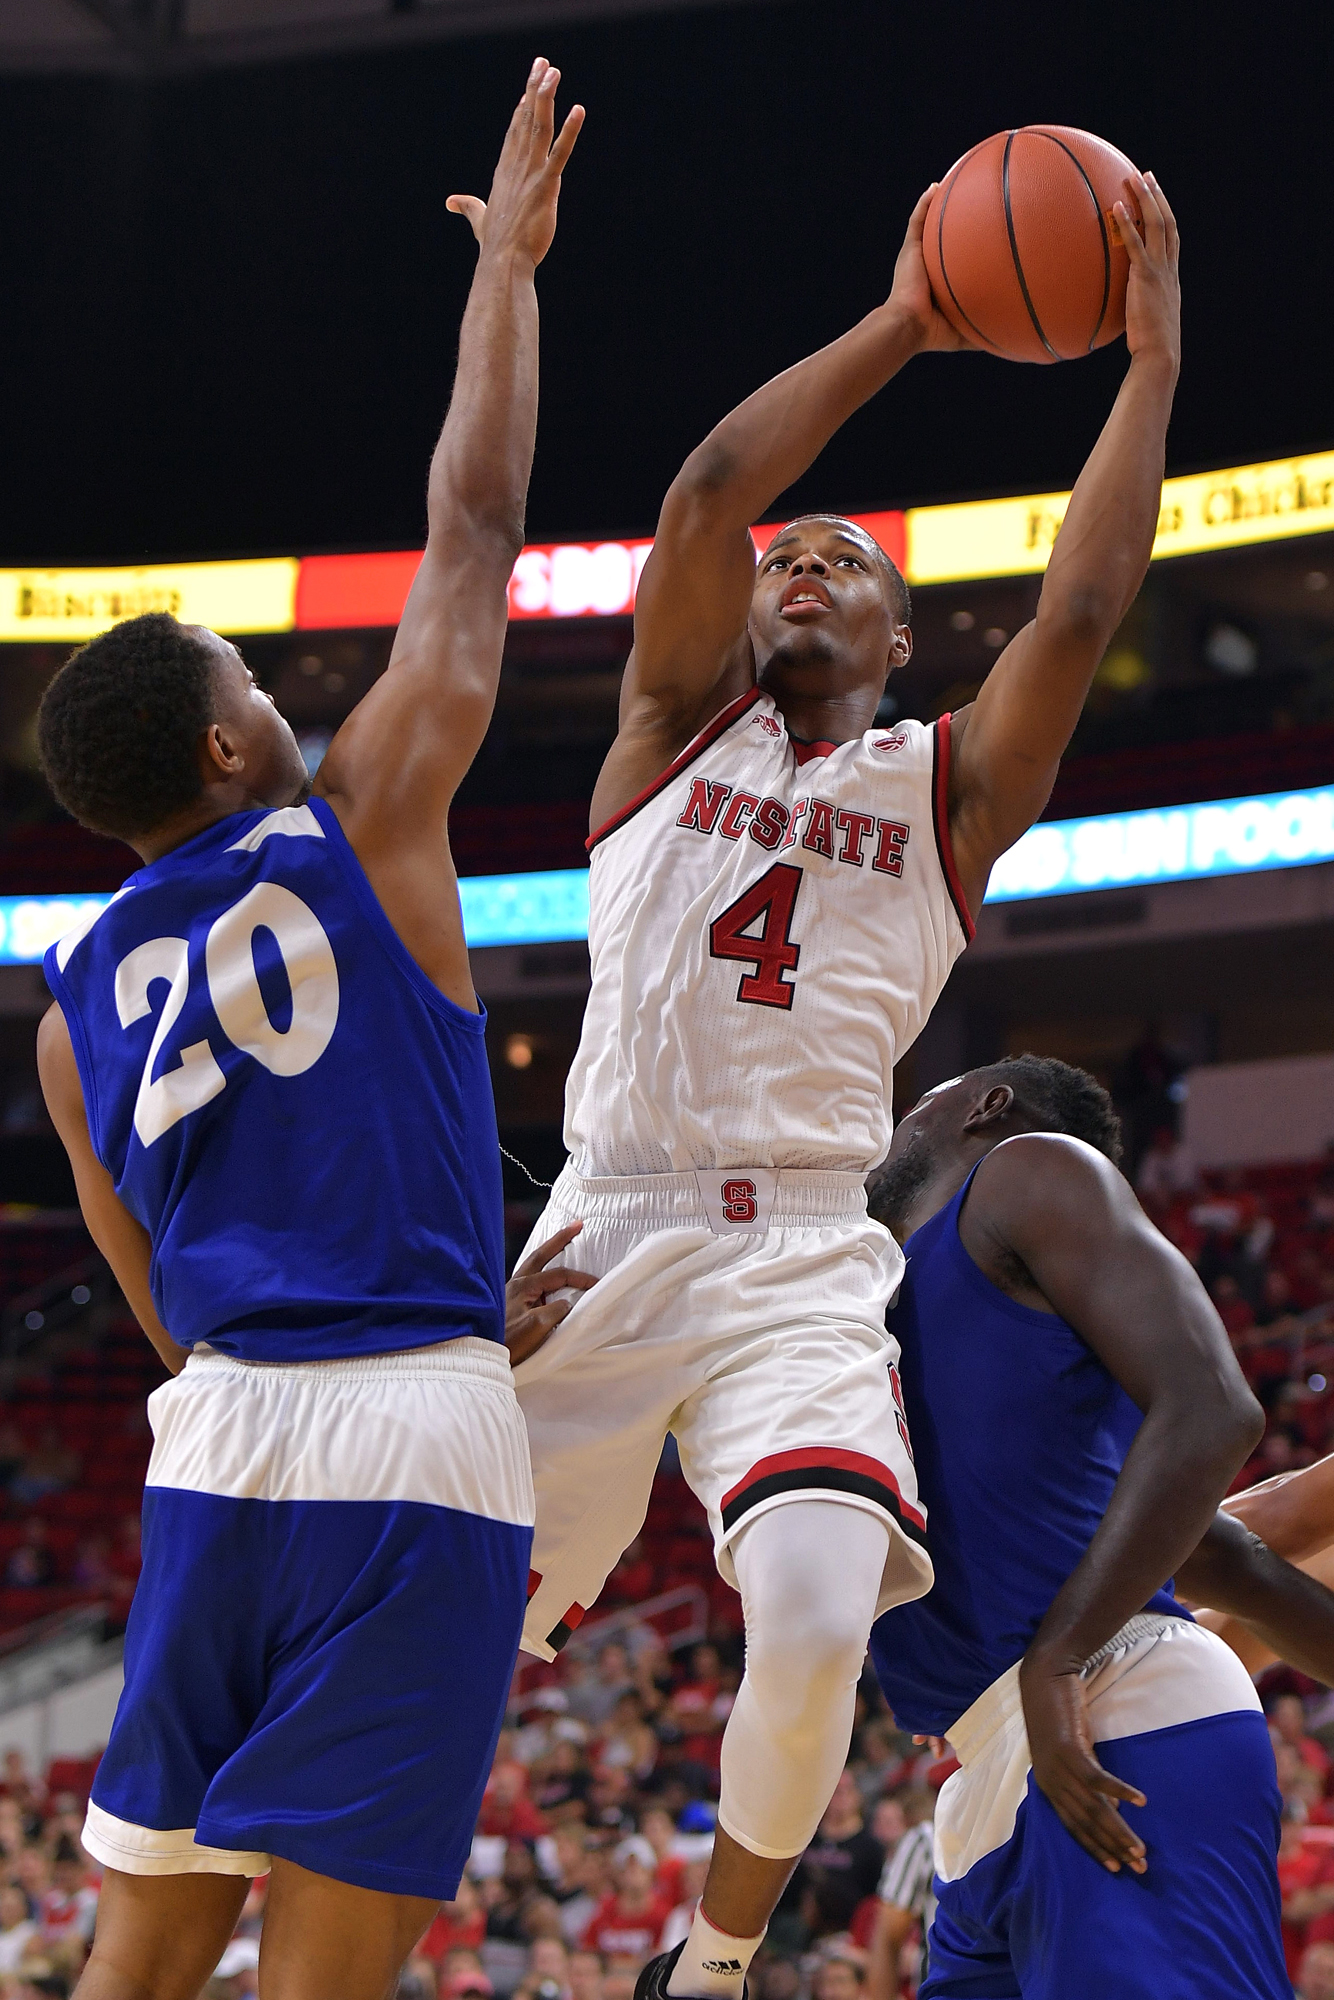 Dennis Smith Jr. #4 of the North Carolina State Wolfpack puts up a shot against Chances Matlock #20 of the Lynn Fighting Knights at PNC Arena on November 3, 2016 in Raleigh, North Carolina.